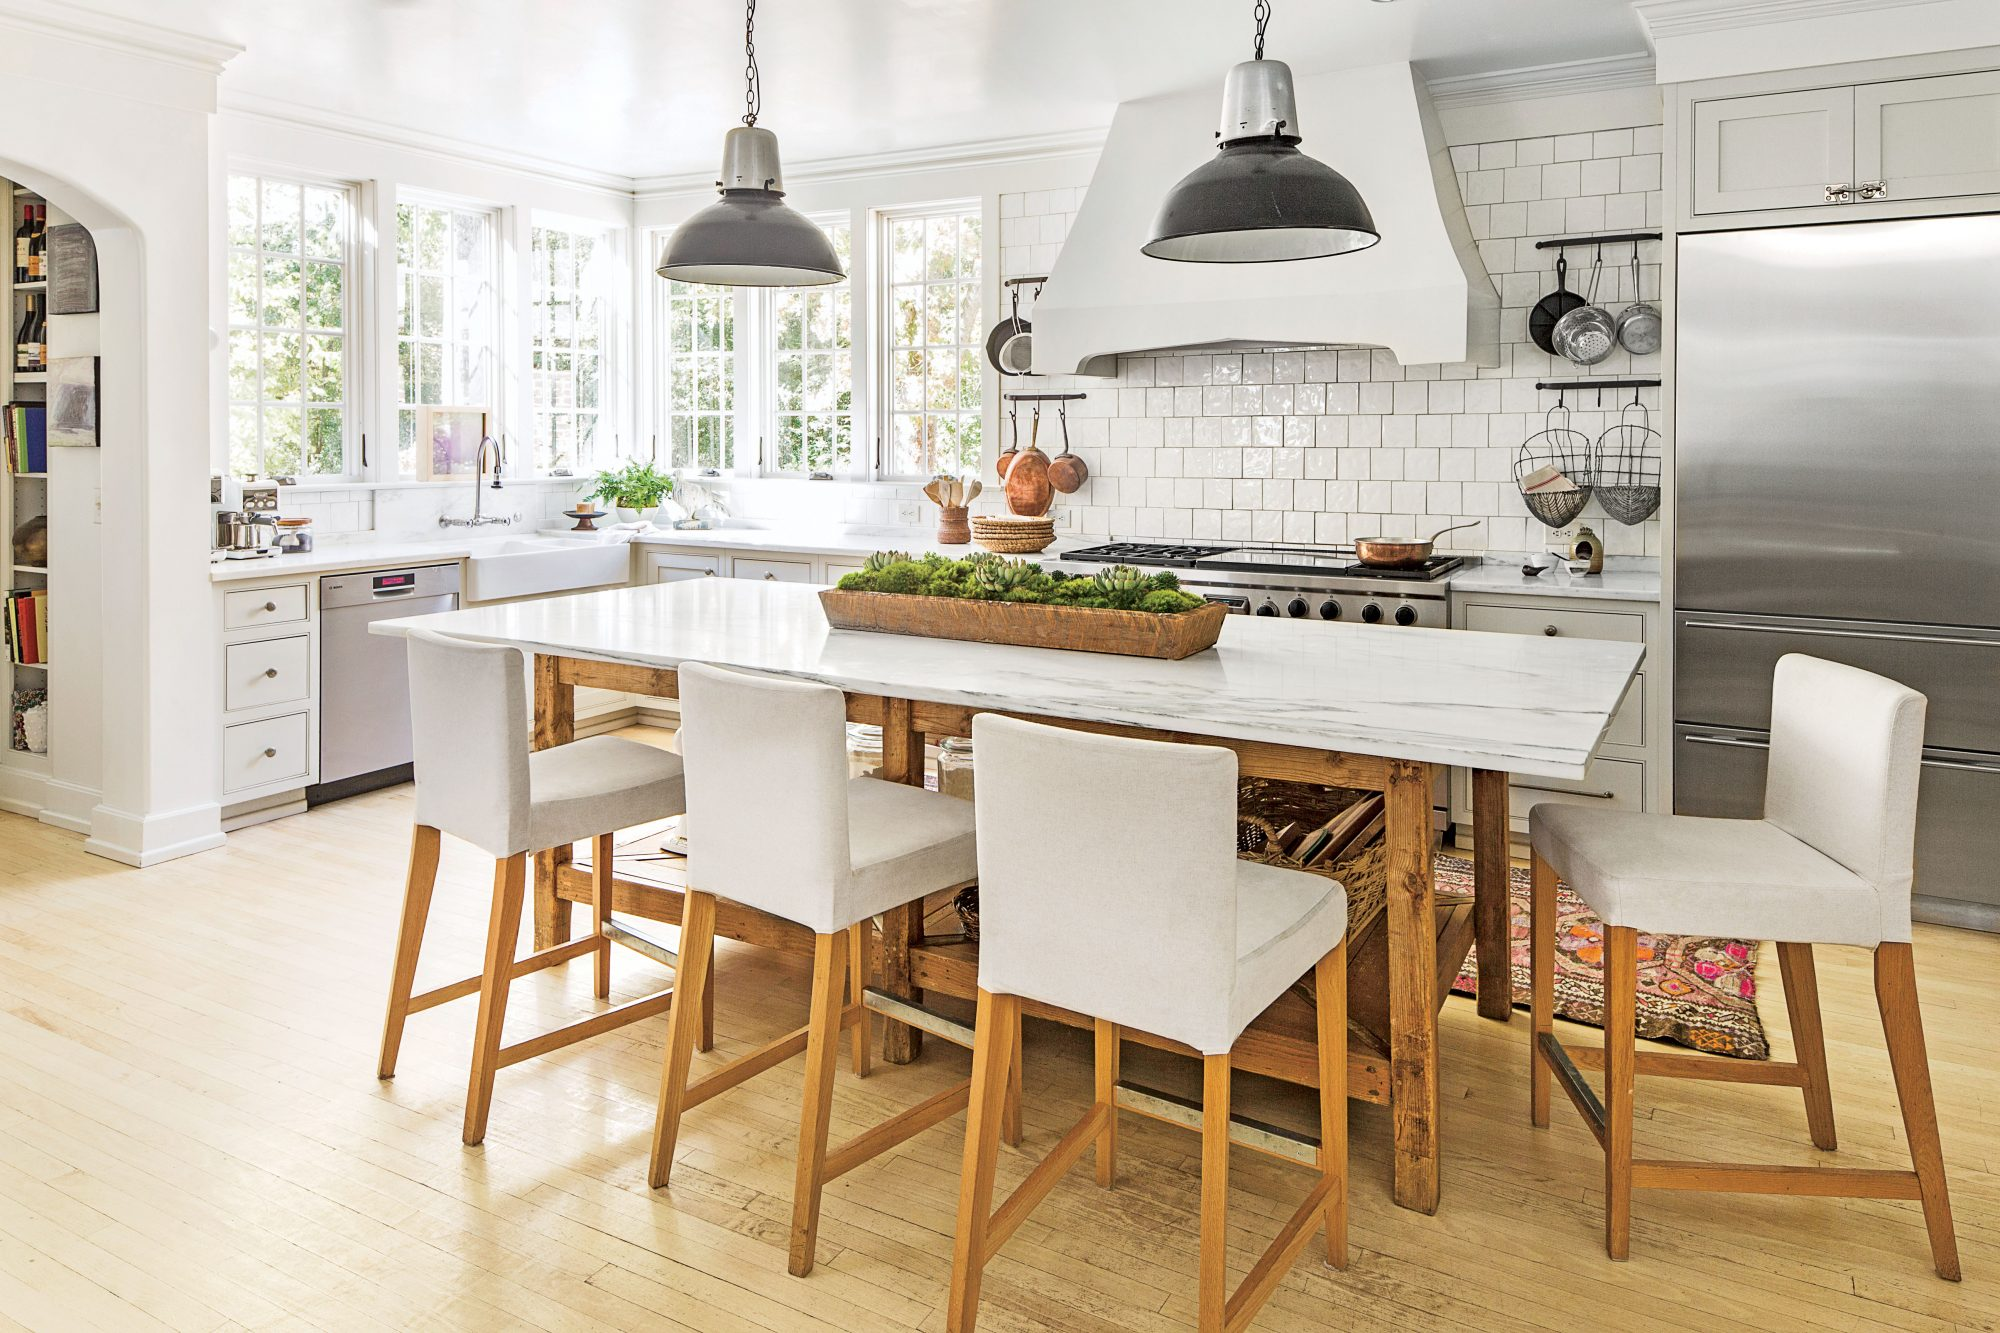 Kitchen Updates easy kitchen updates - southern living